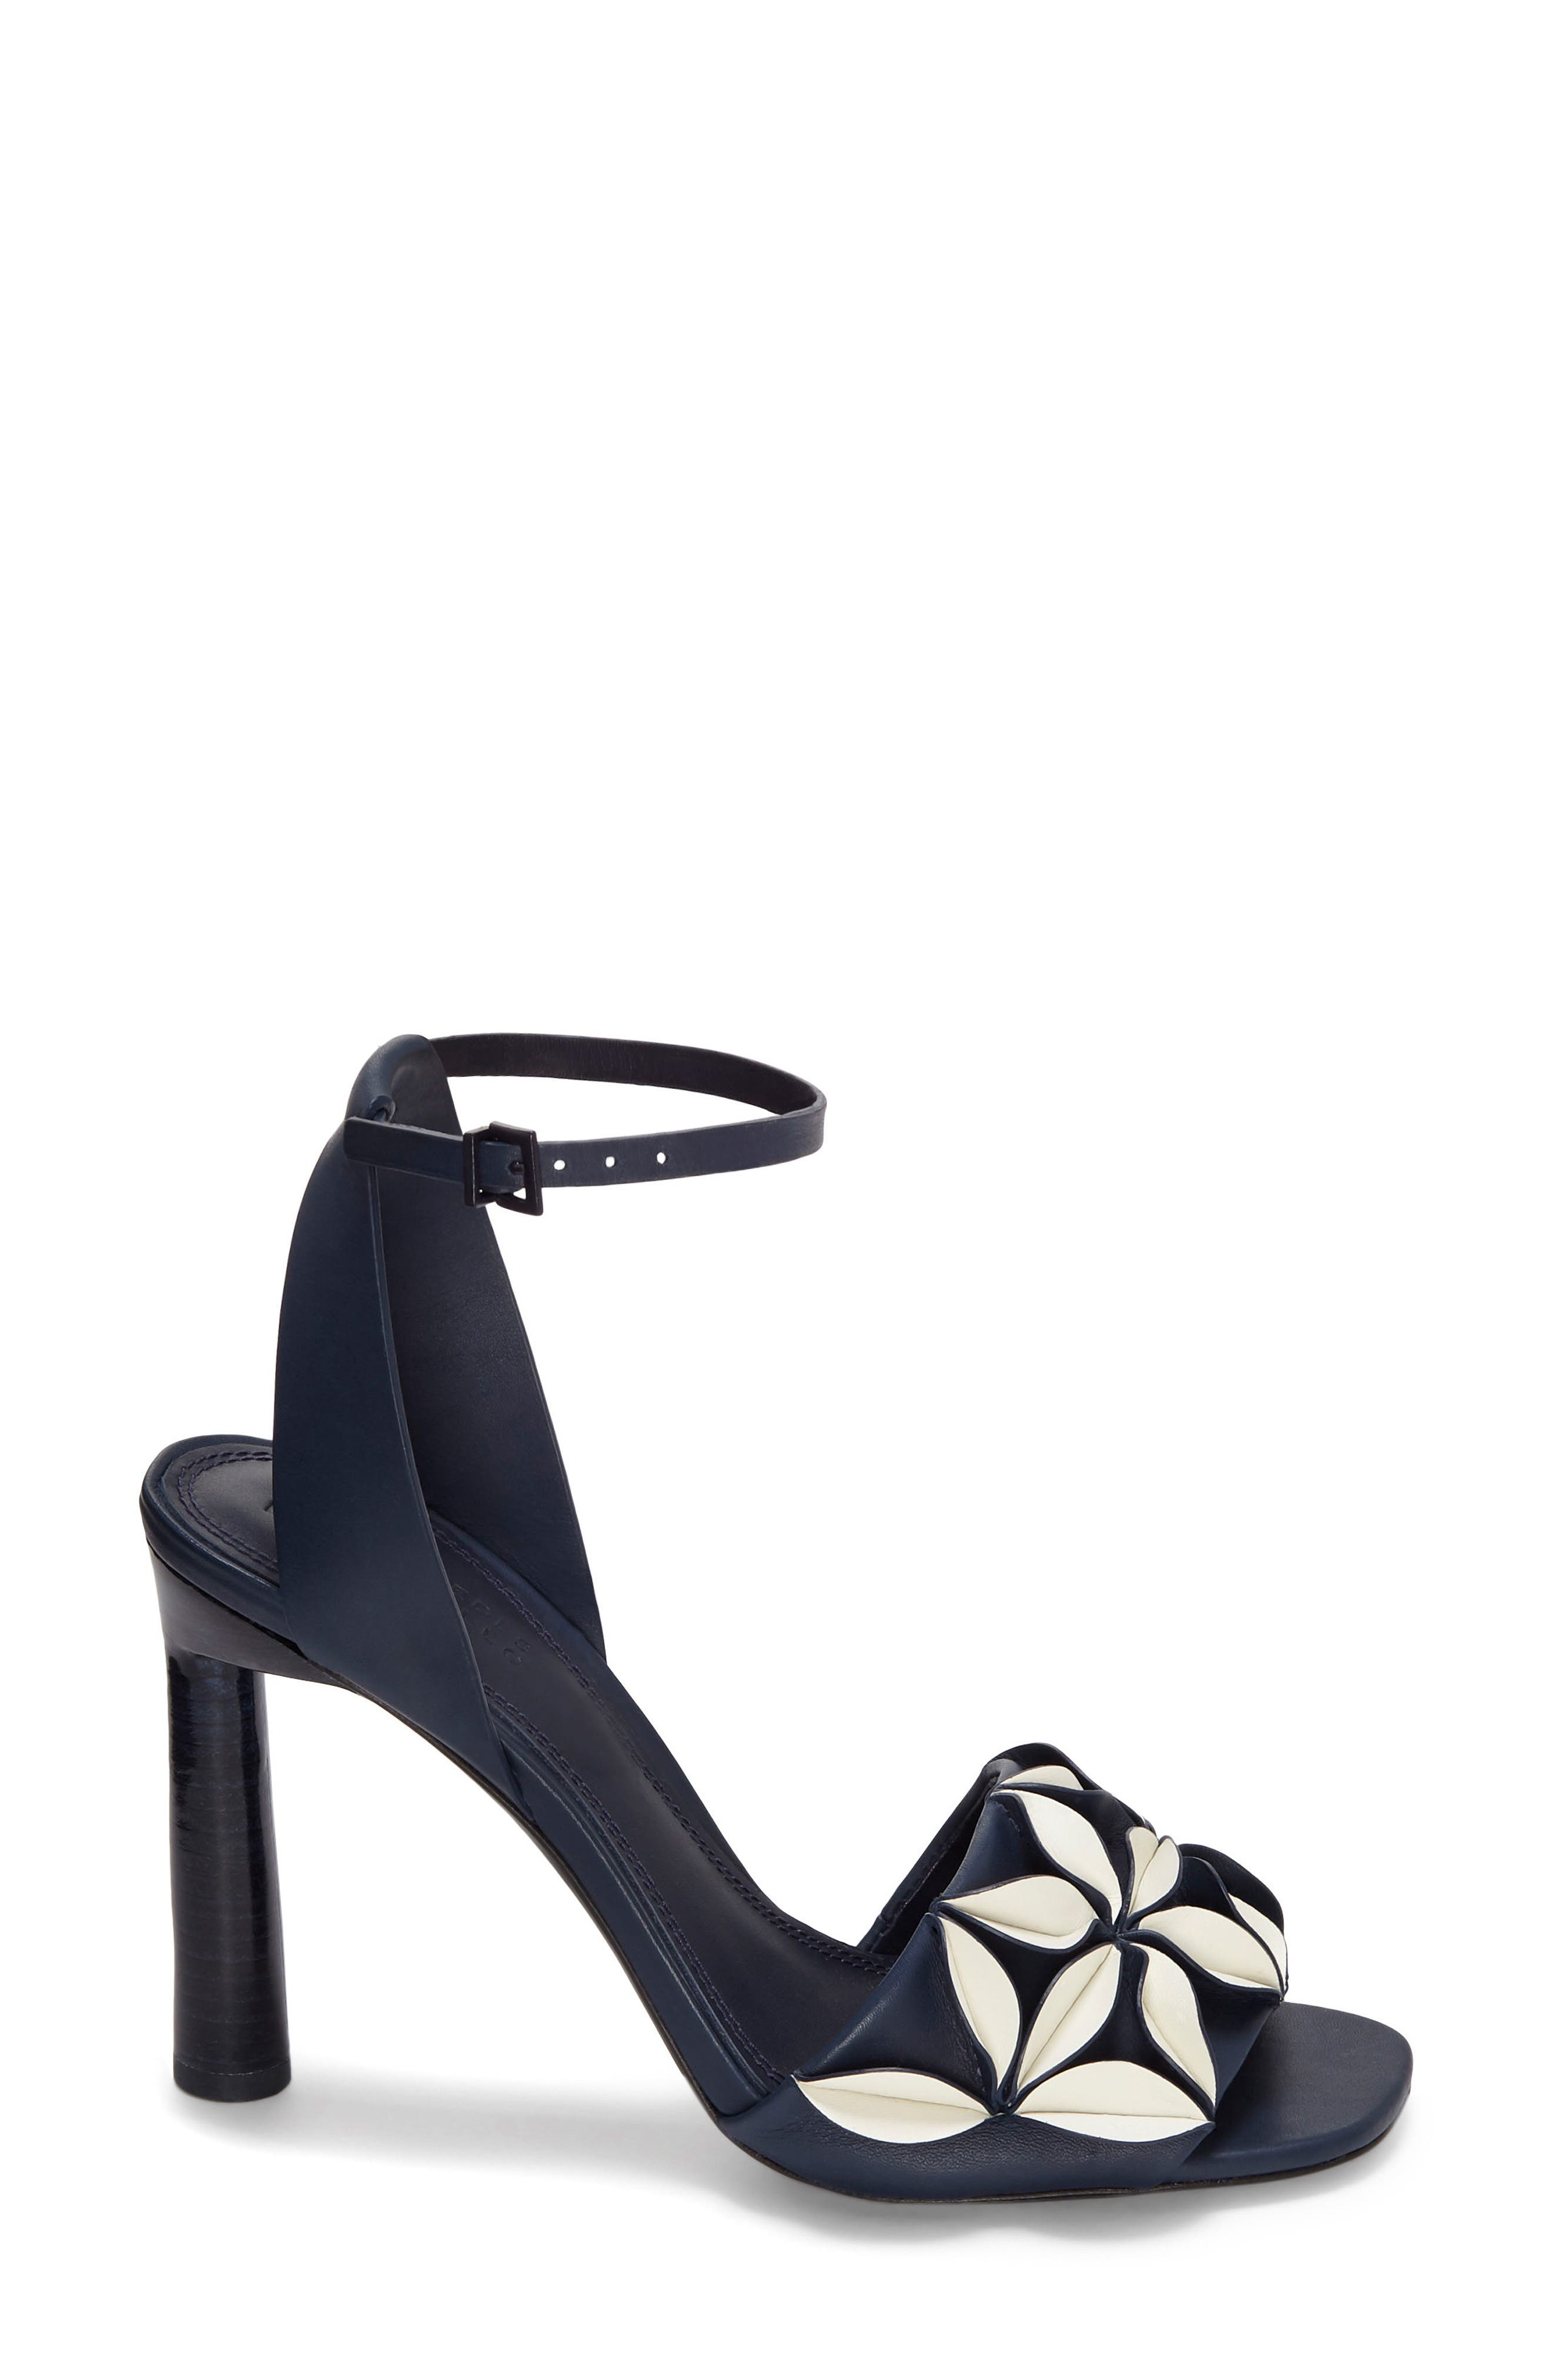 Milee Ankle Strap Sandal,                         Main,                         color, Bright Blue/ White